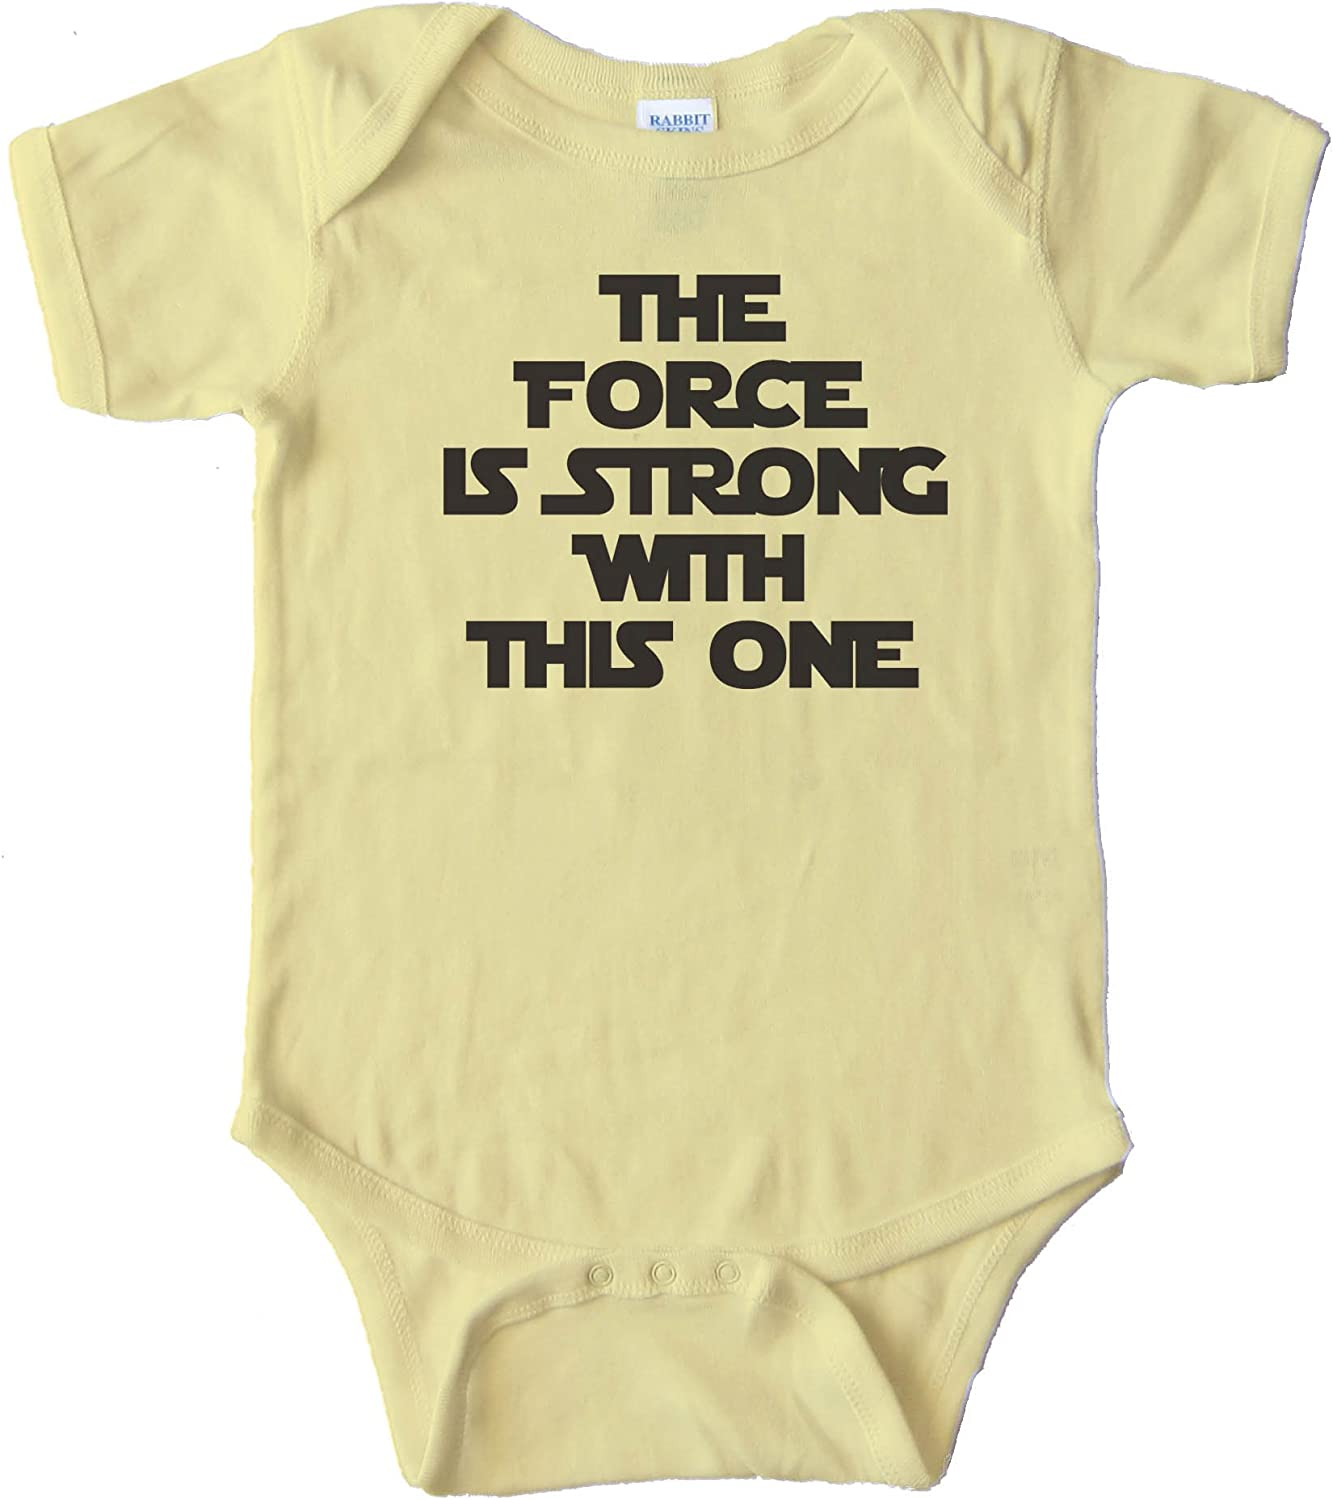 The Force is Strong onsie